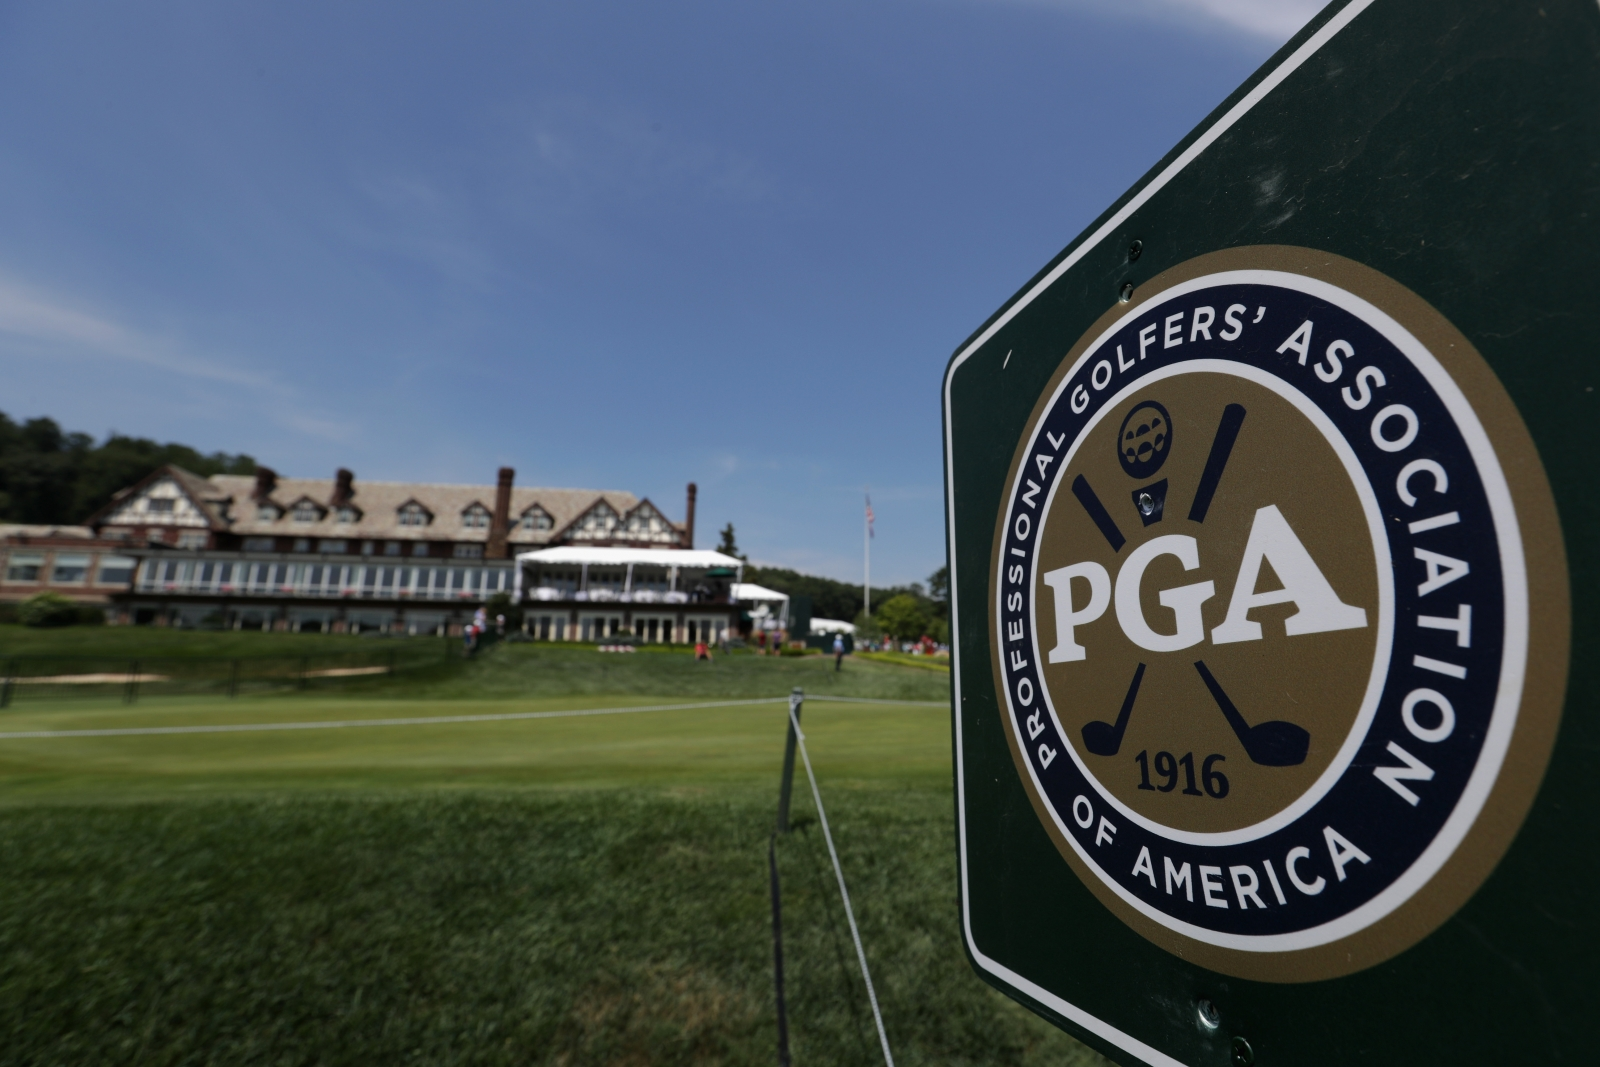 Pga Championship: US PGA Championship 2016: Where To Watch Live, Tee Times